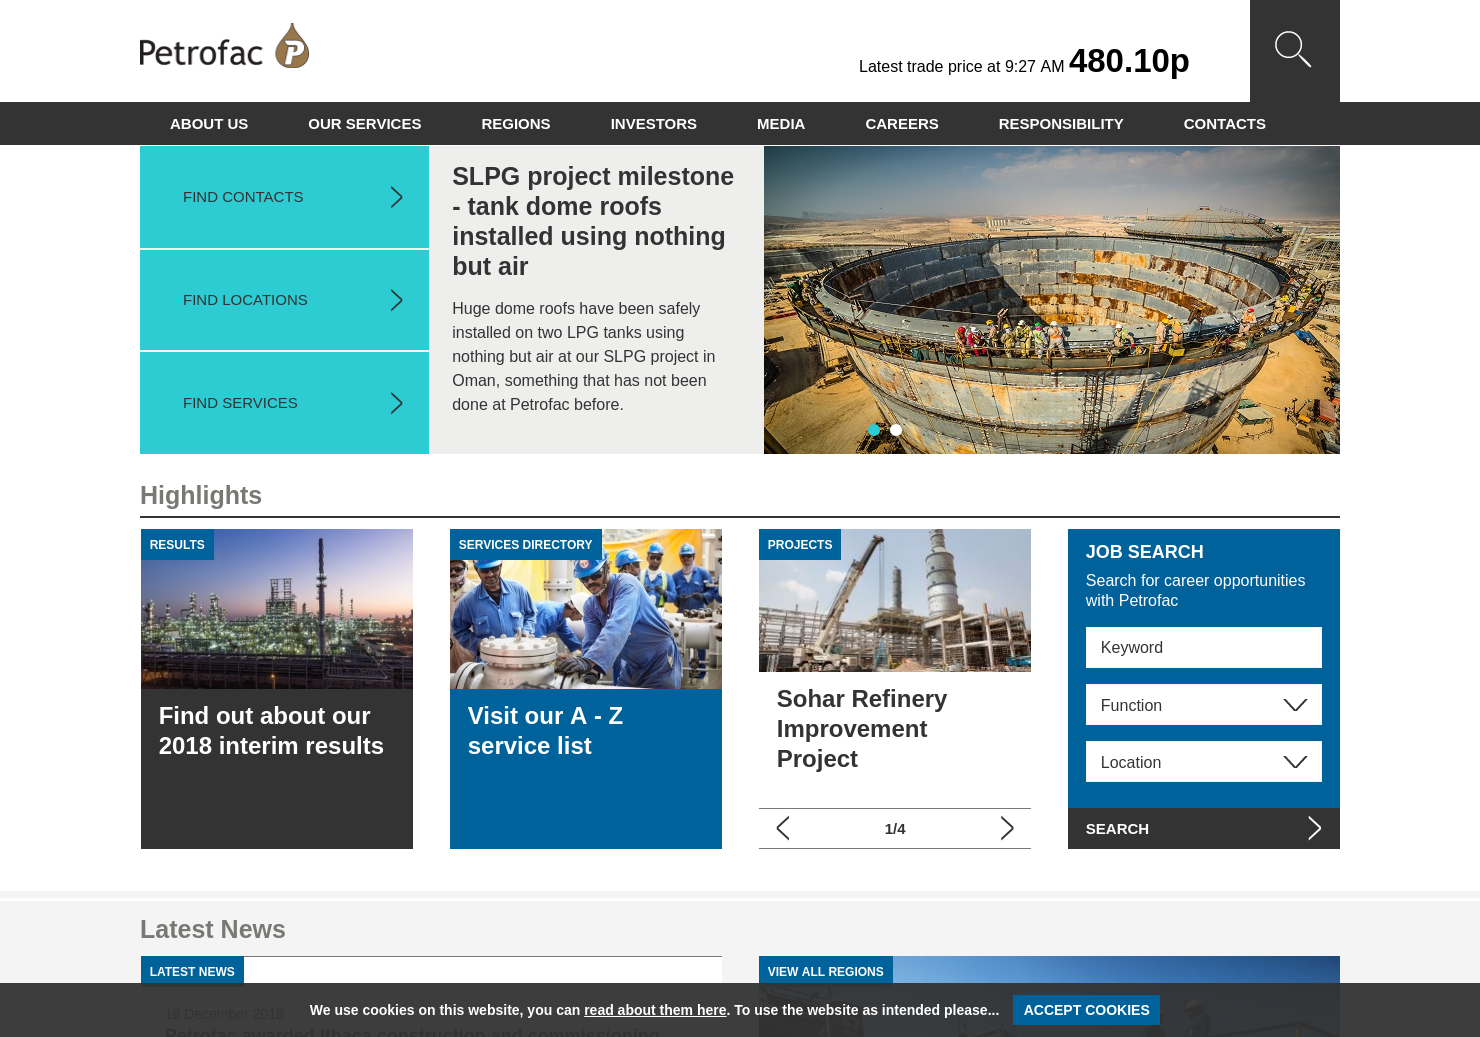 Petrofac Home Page